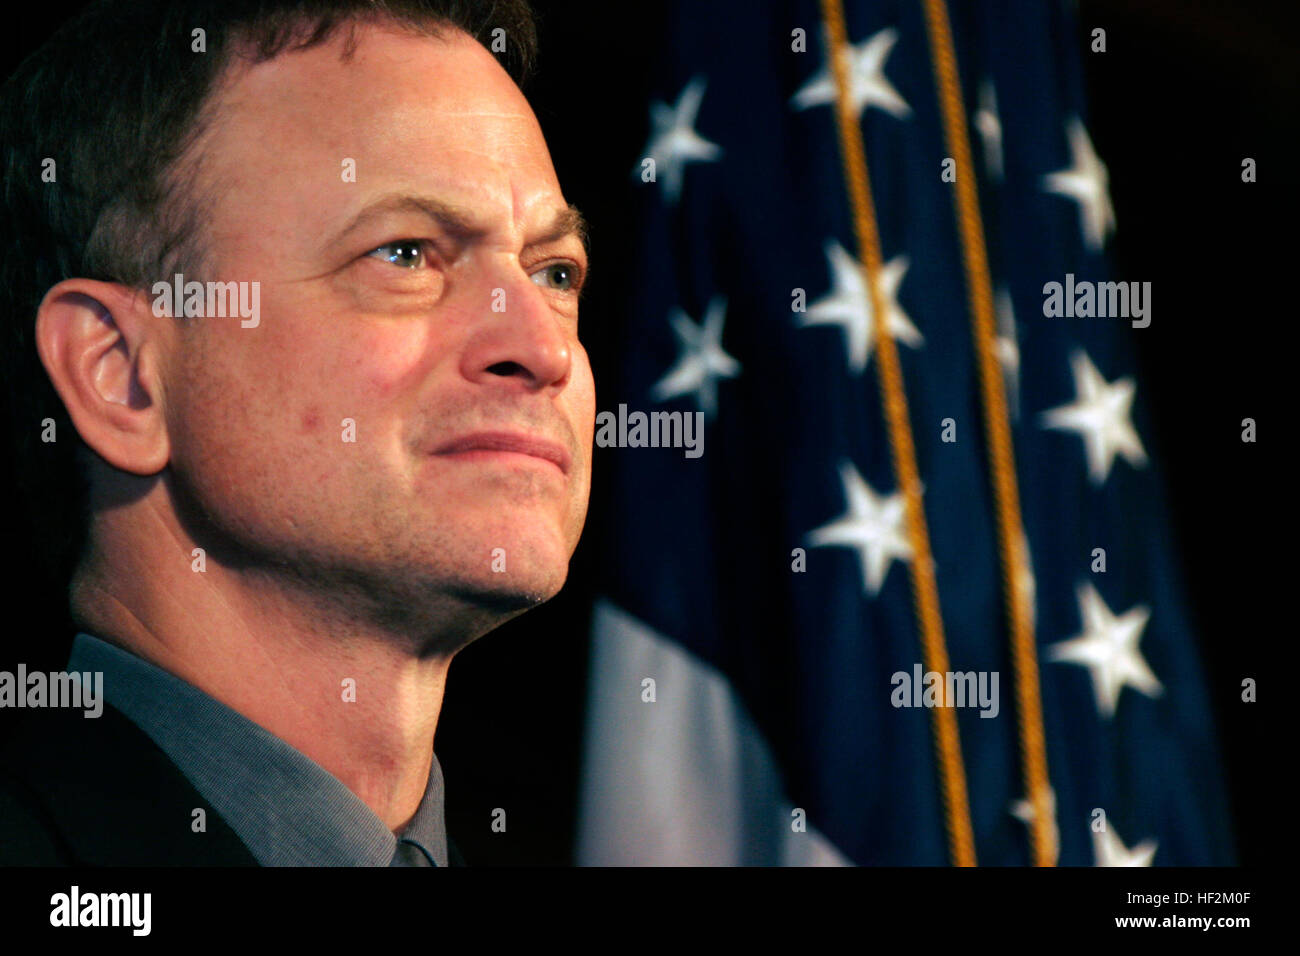 Co-executive producer of 'Brothers at War,' actor Gary Sinise reacts during a question and answer period following - Stock Image